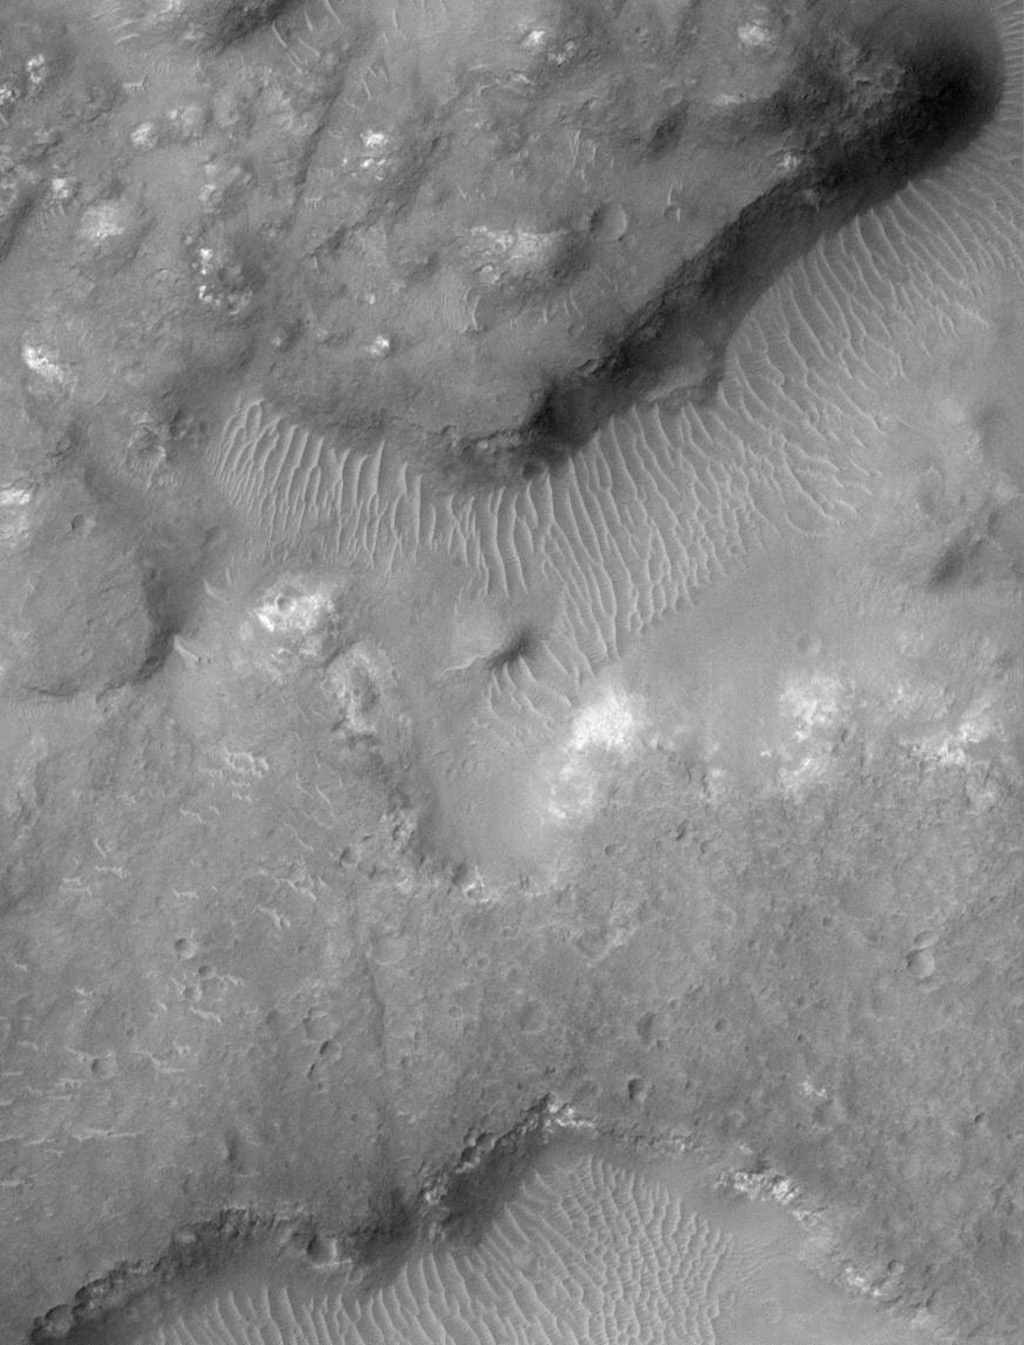 NASA's Mars Global Surveyor shows jumbled and broken terrain known as chaotic terrain. The region shown here is named 'Margaritifer Chaos.'